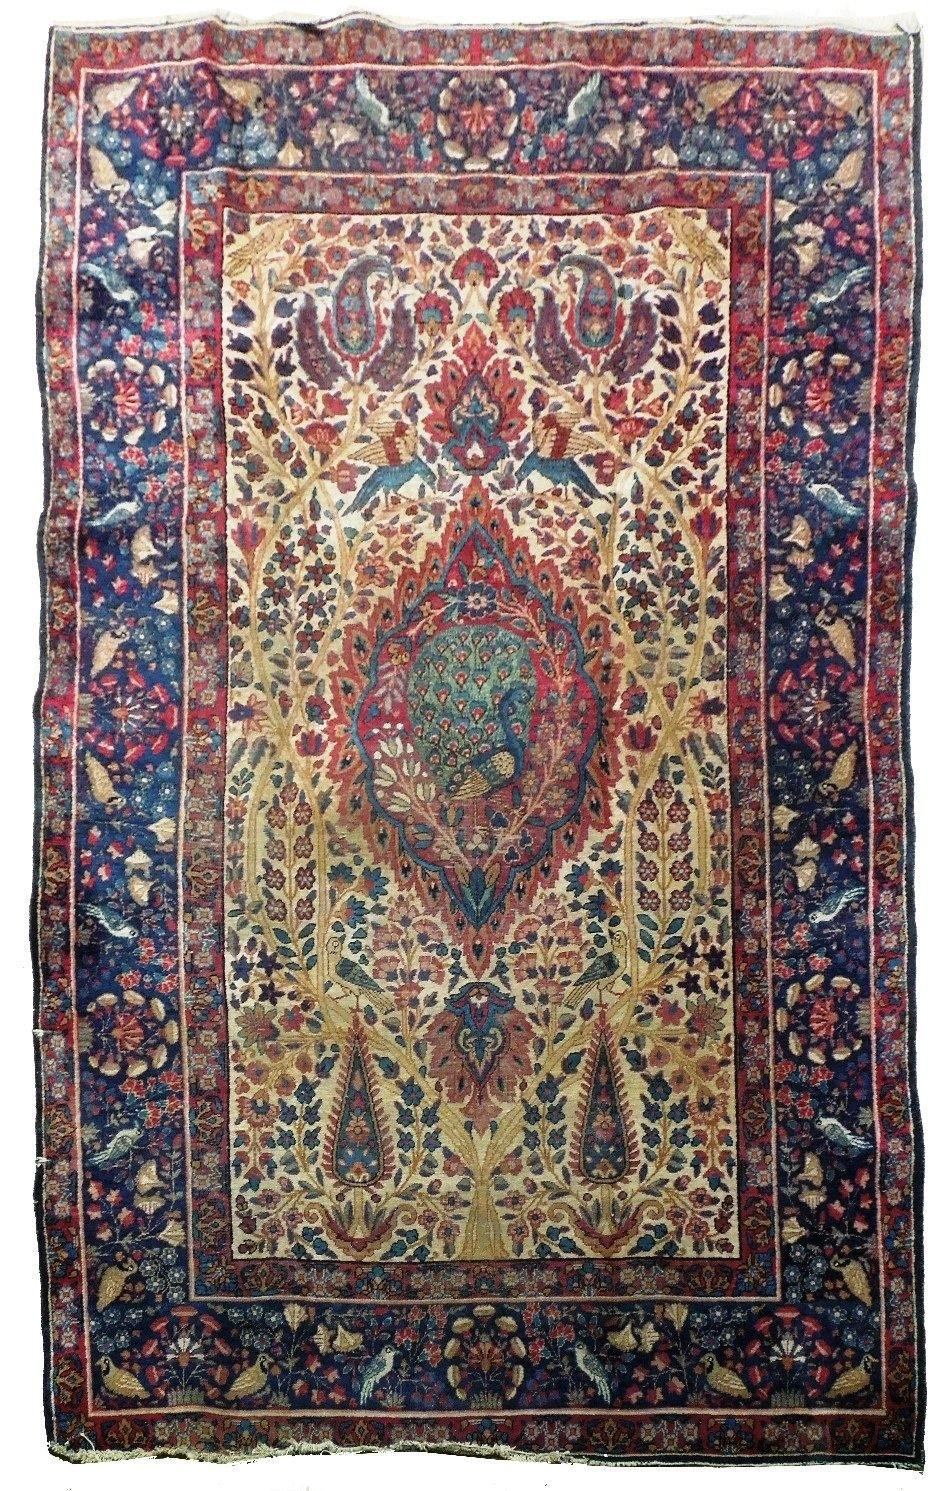 5x7 Authentic Hand-Knotted Antique Persian Sarouk Rug - Iran - bestrugplace